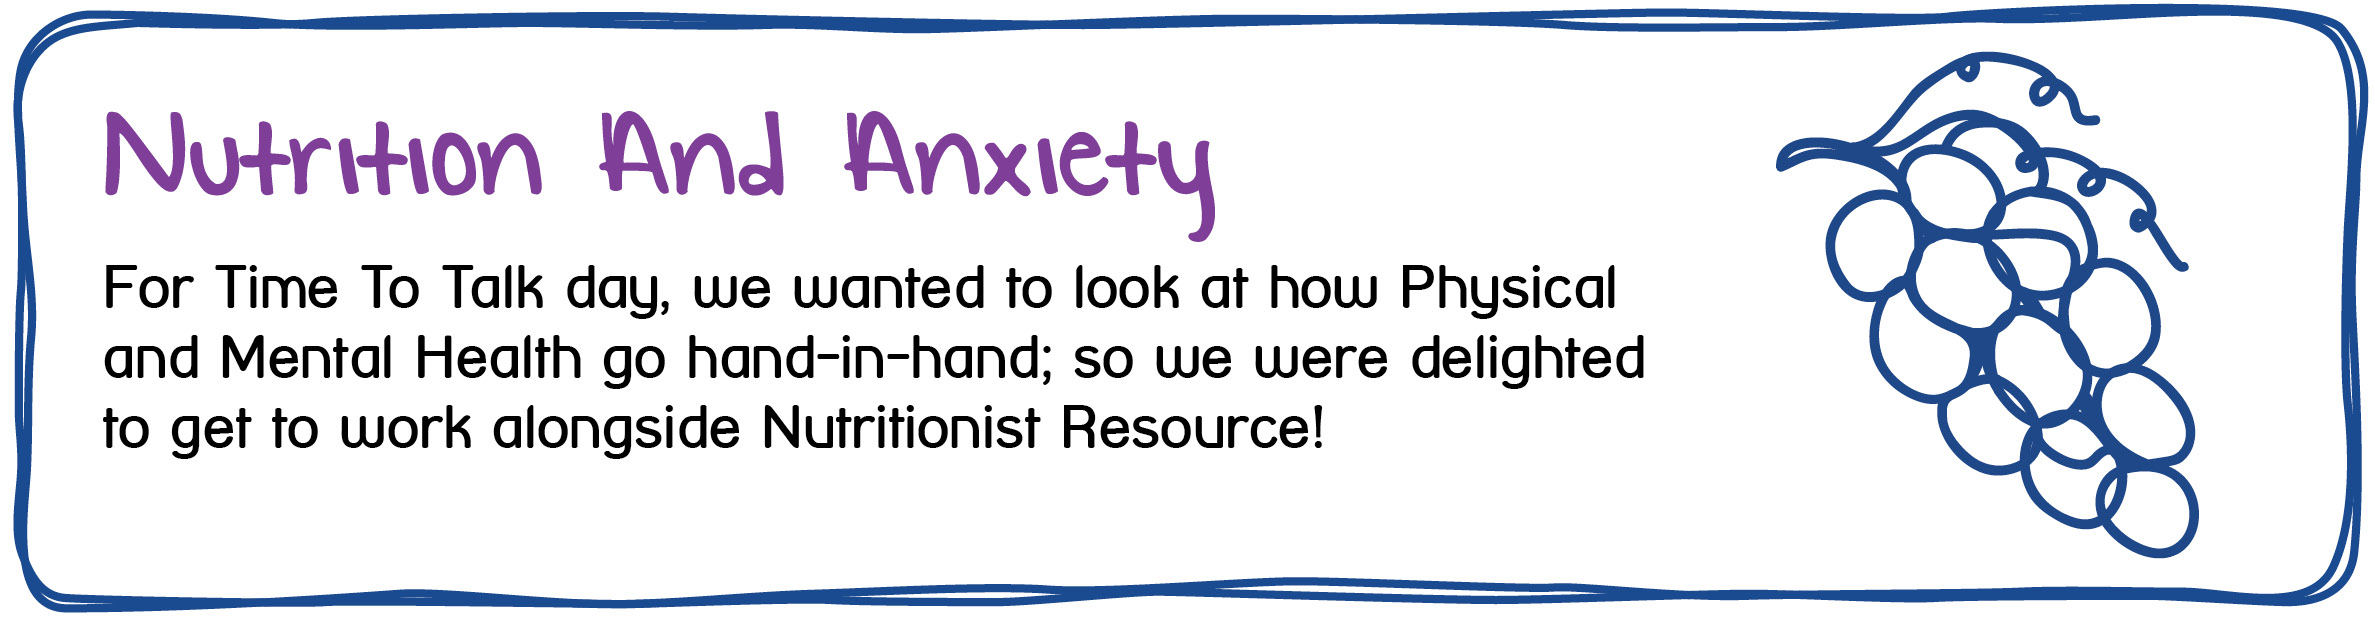 Nutrition And Anxiety - For Time To Talk day, we wanted to look at how physical and Mental Health go hand-in-hand, so we were delighted to get to work alongside Nutritionist Resource.